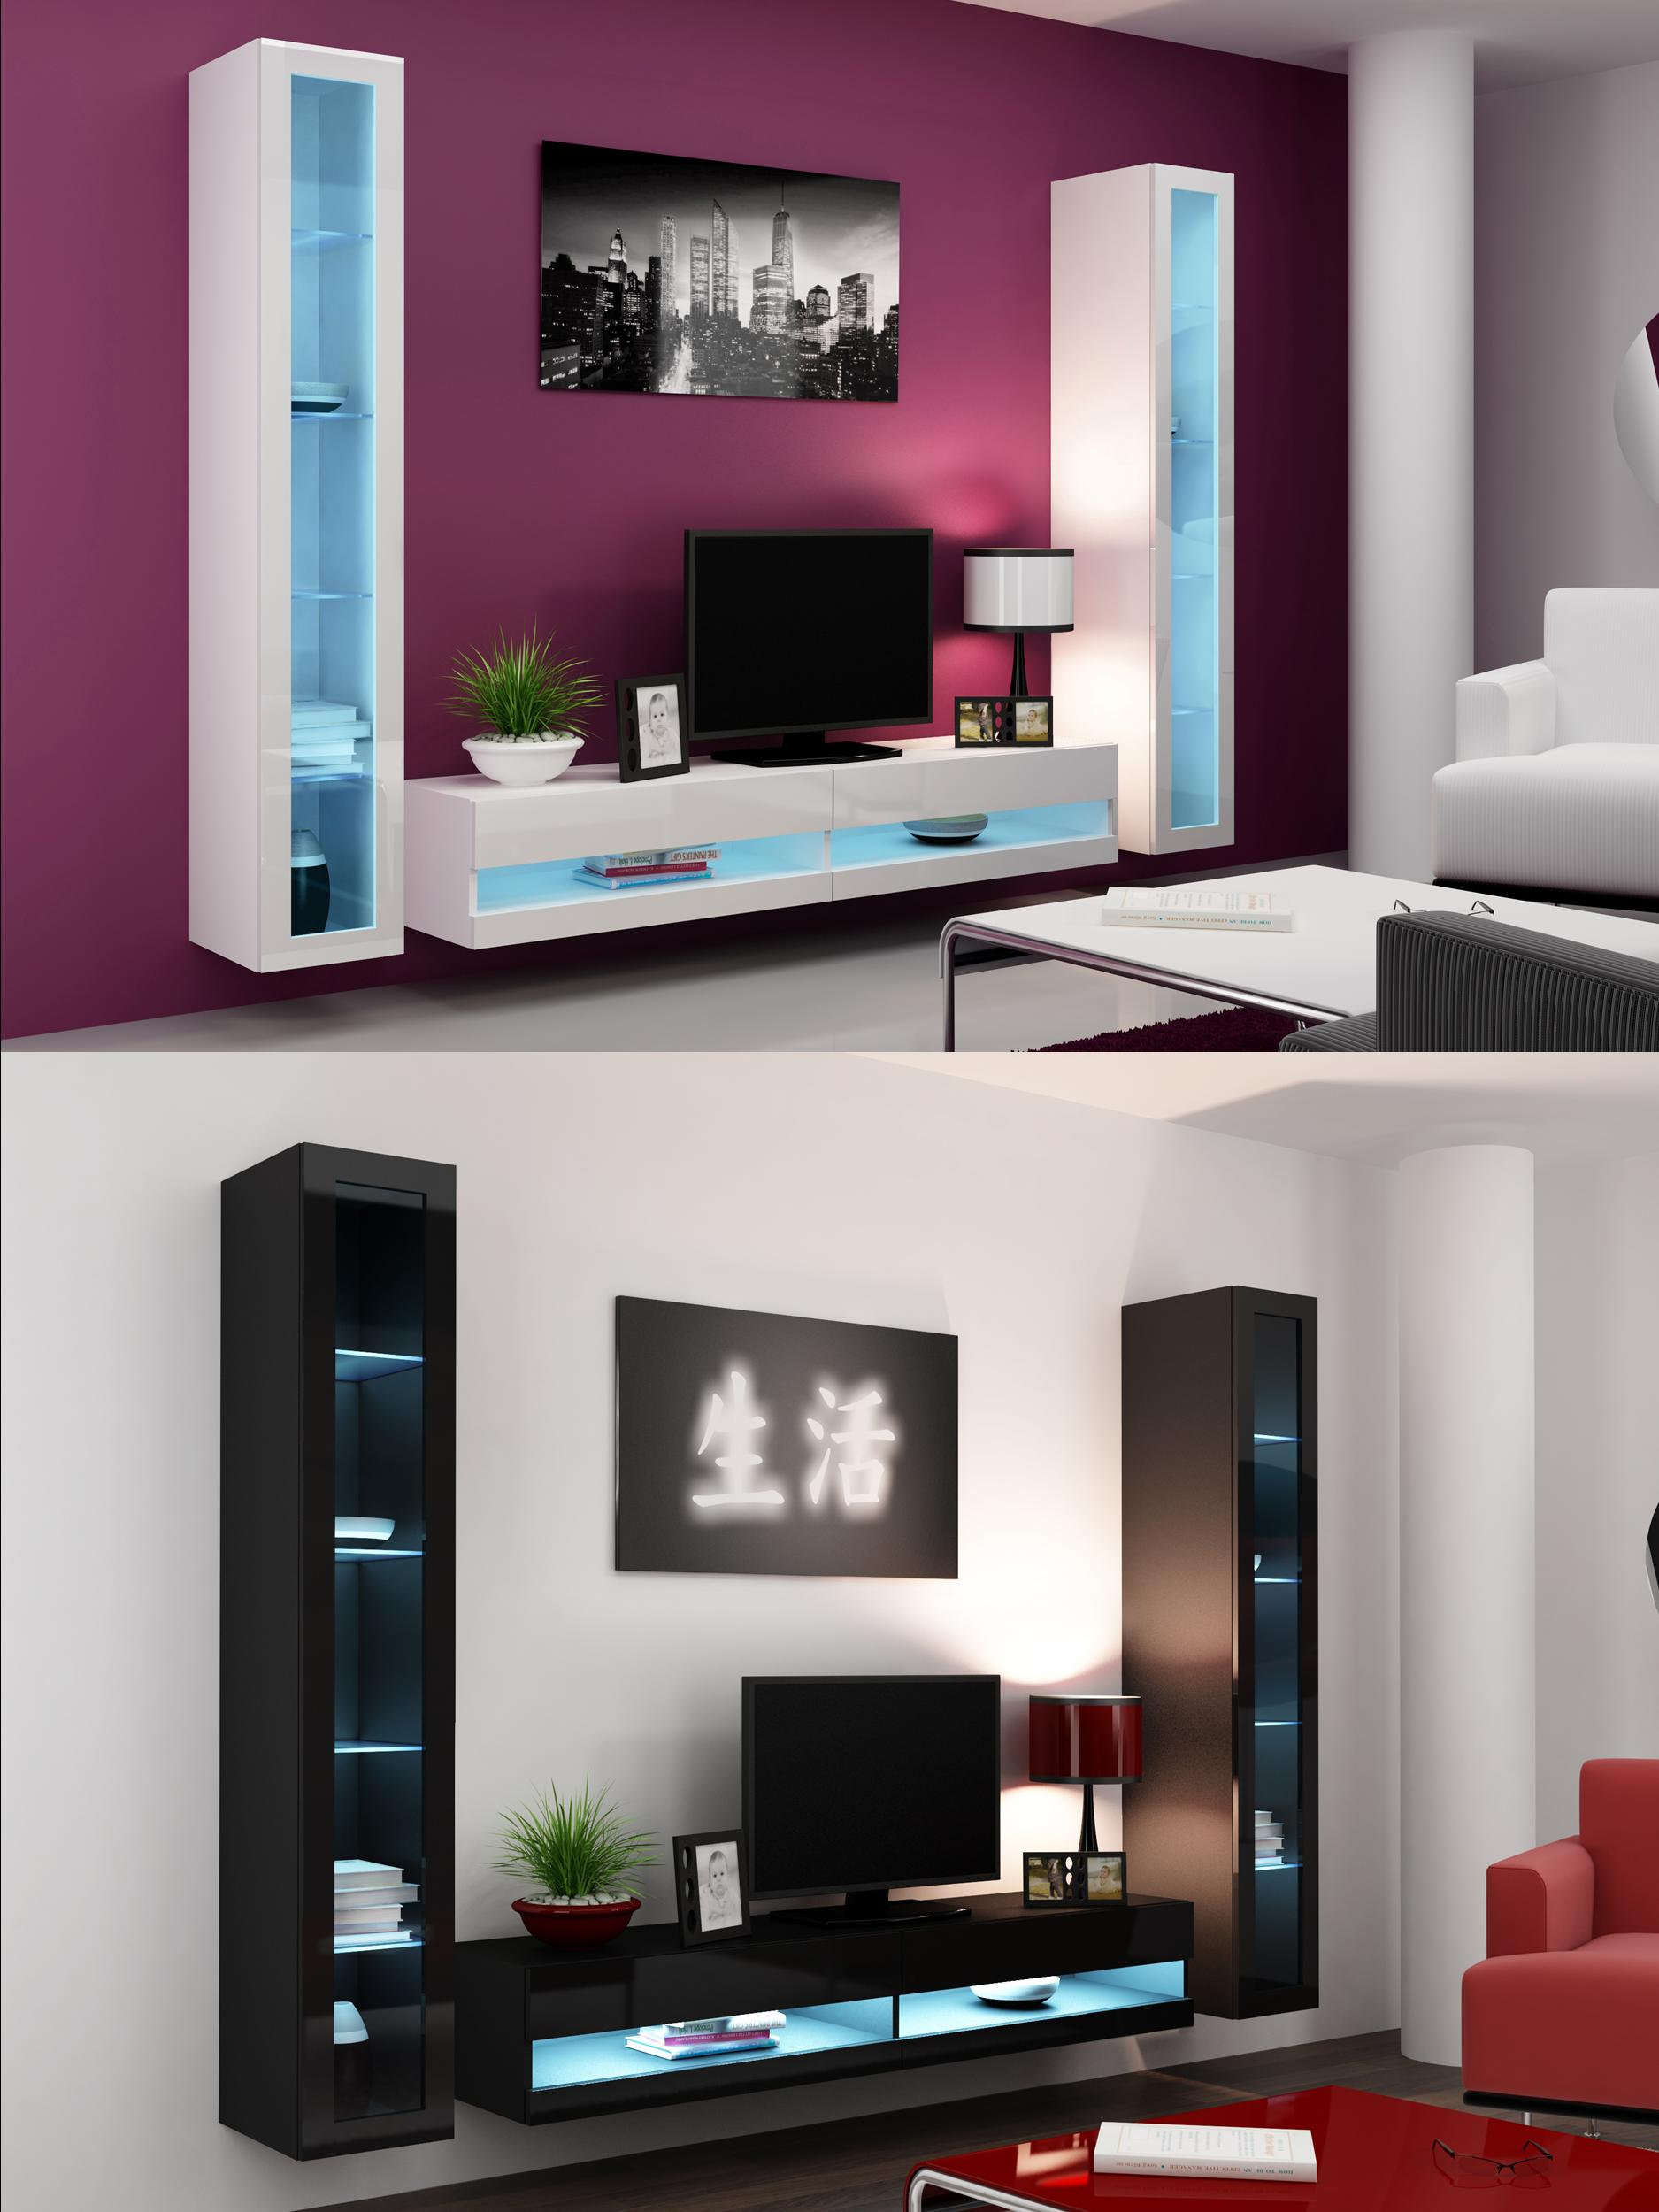 High Gloss Living Room Set With Led Lights Tv Stand Wall Mounted Cabinet Ebay